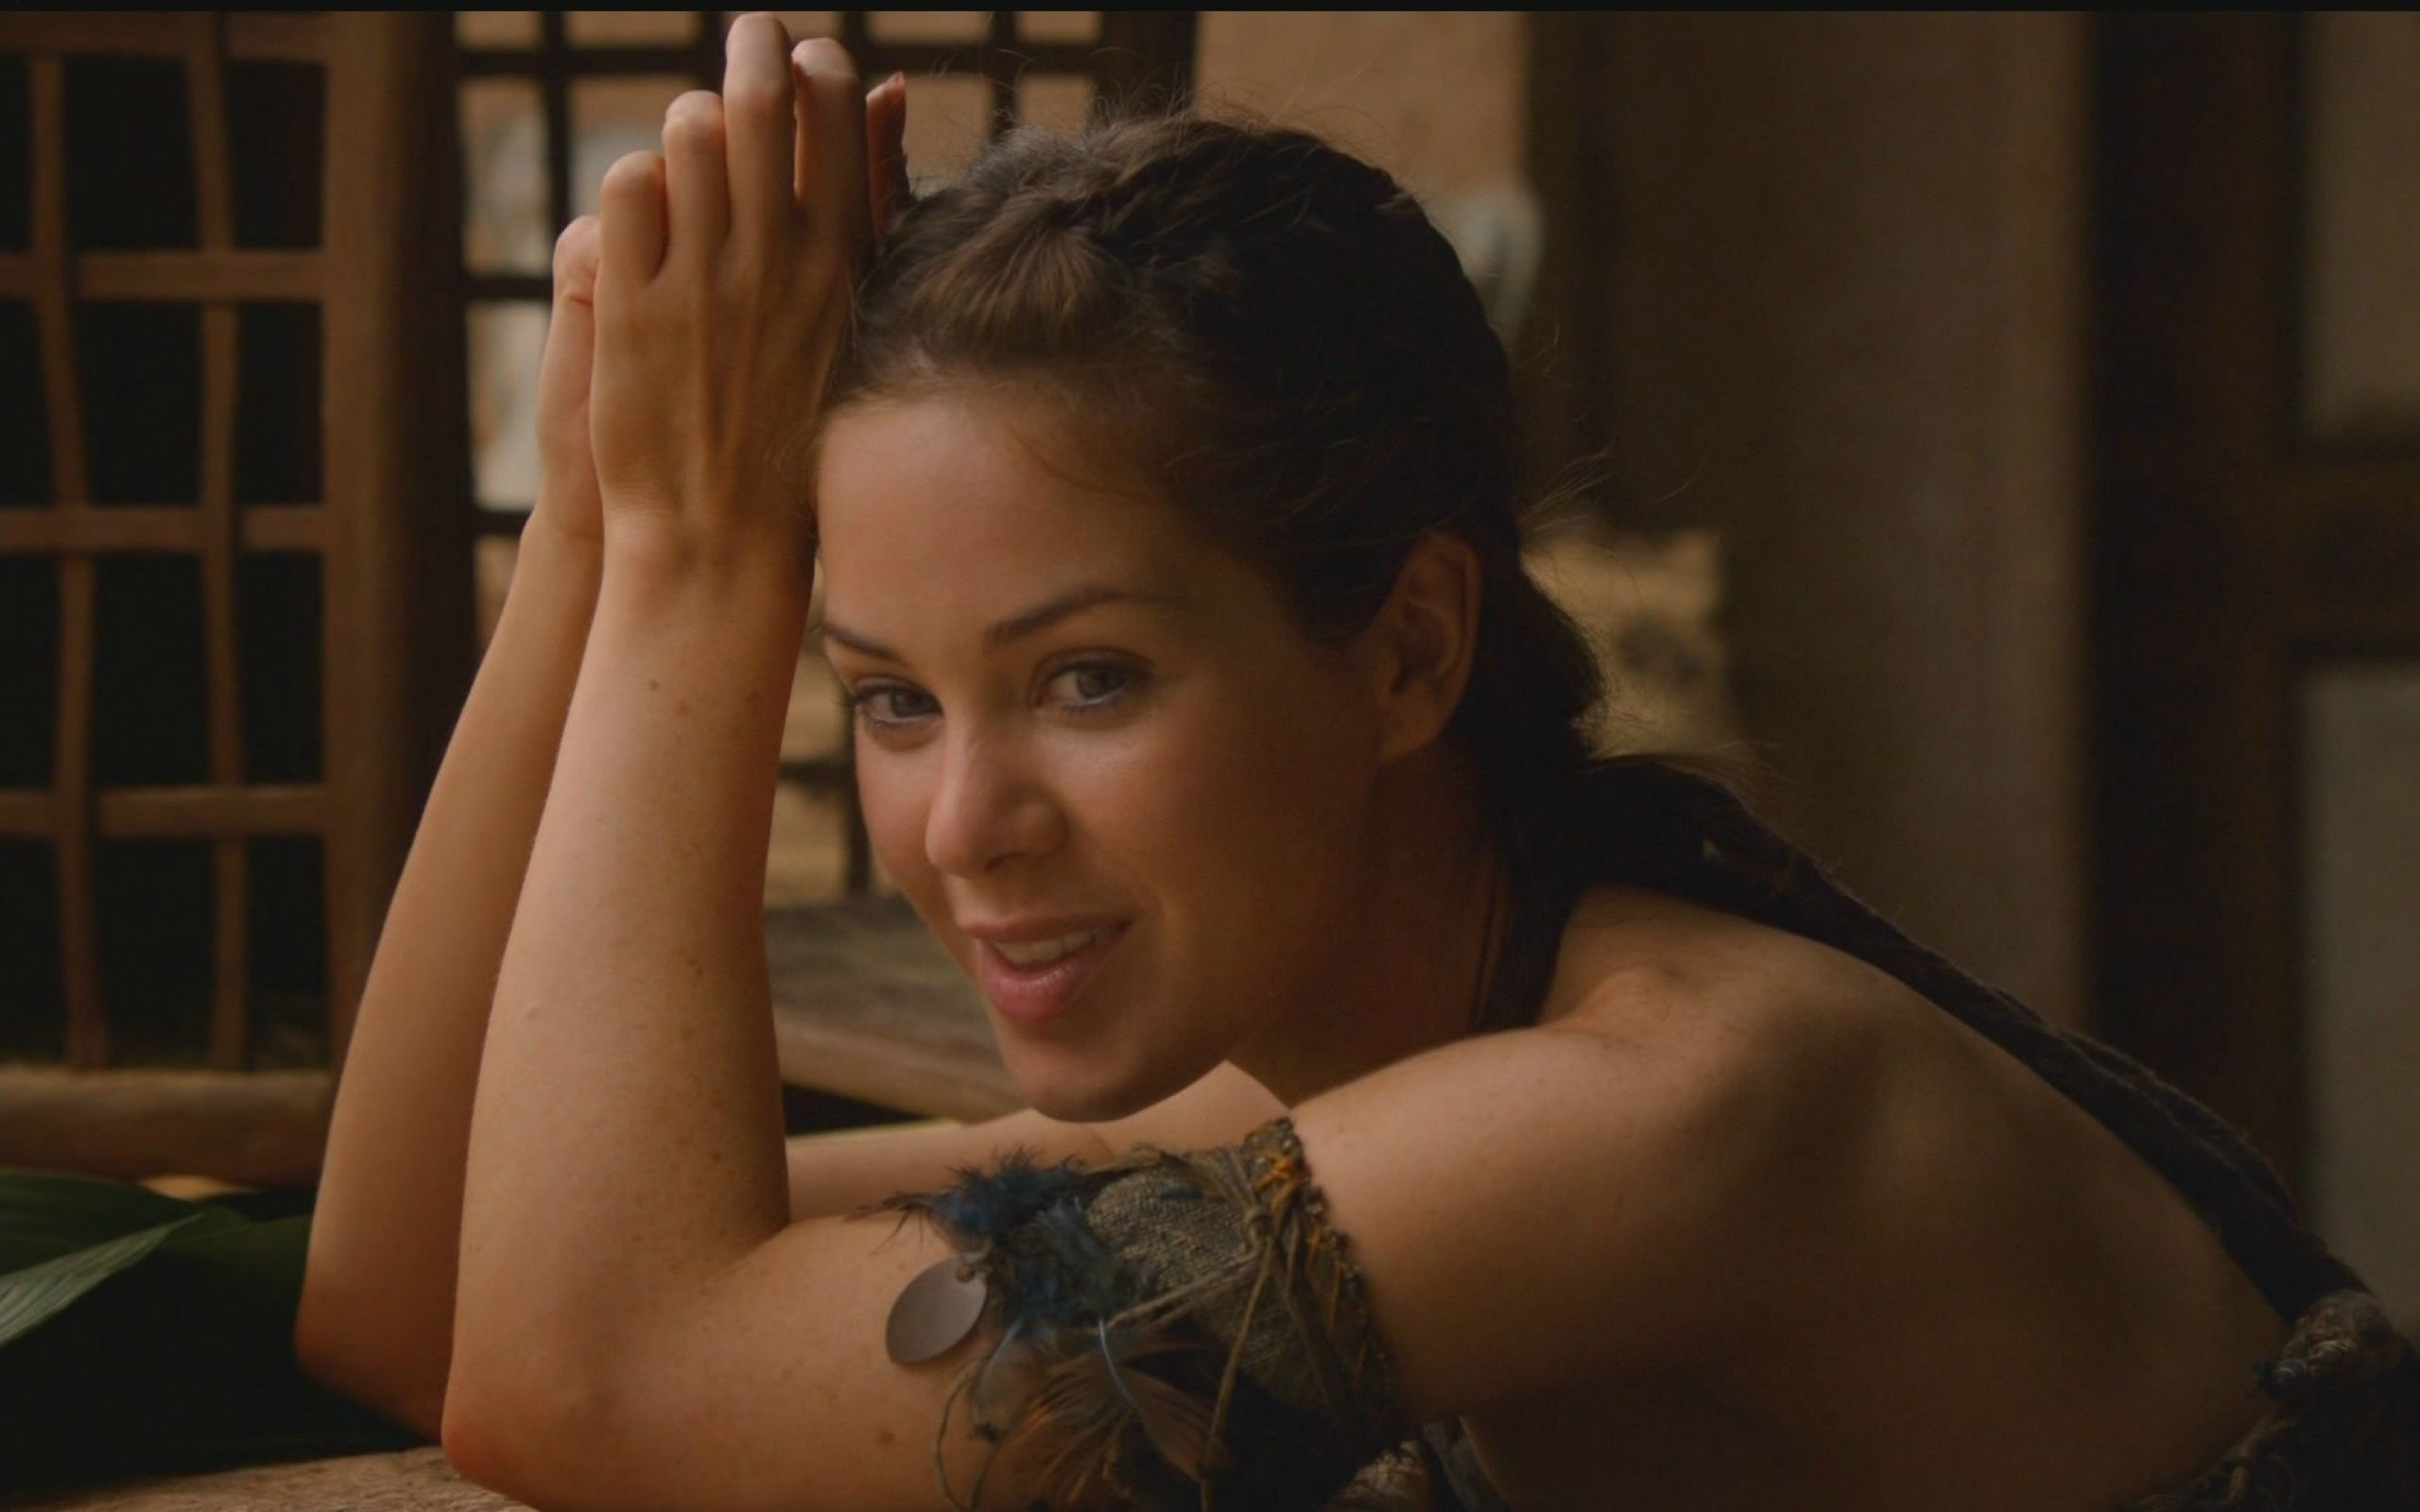 Love roxanne mckee was